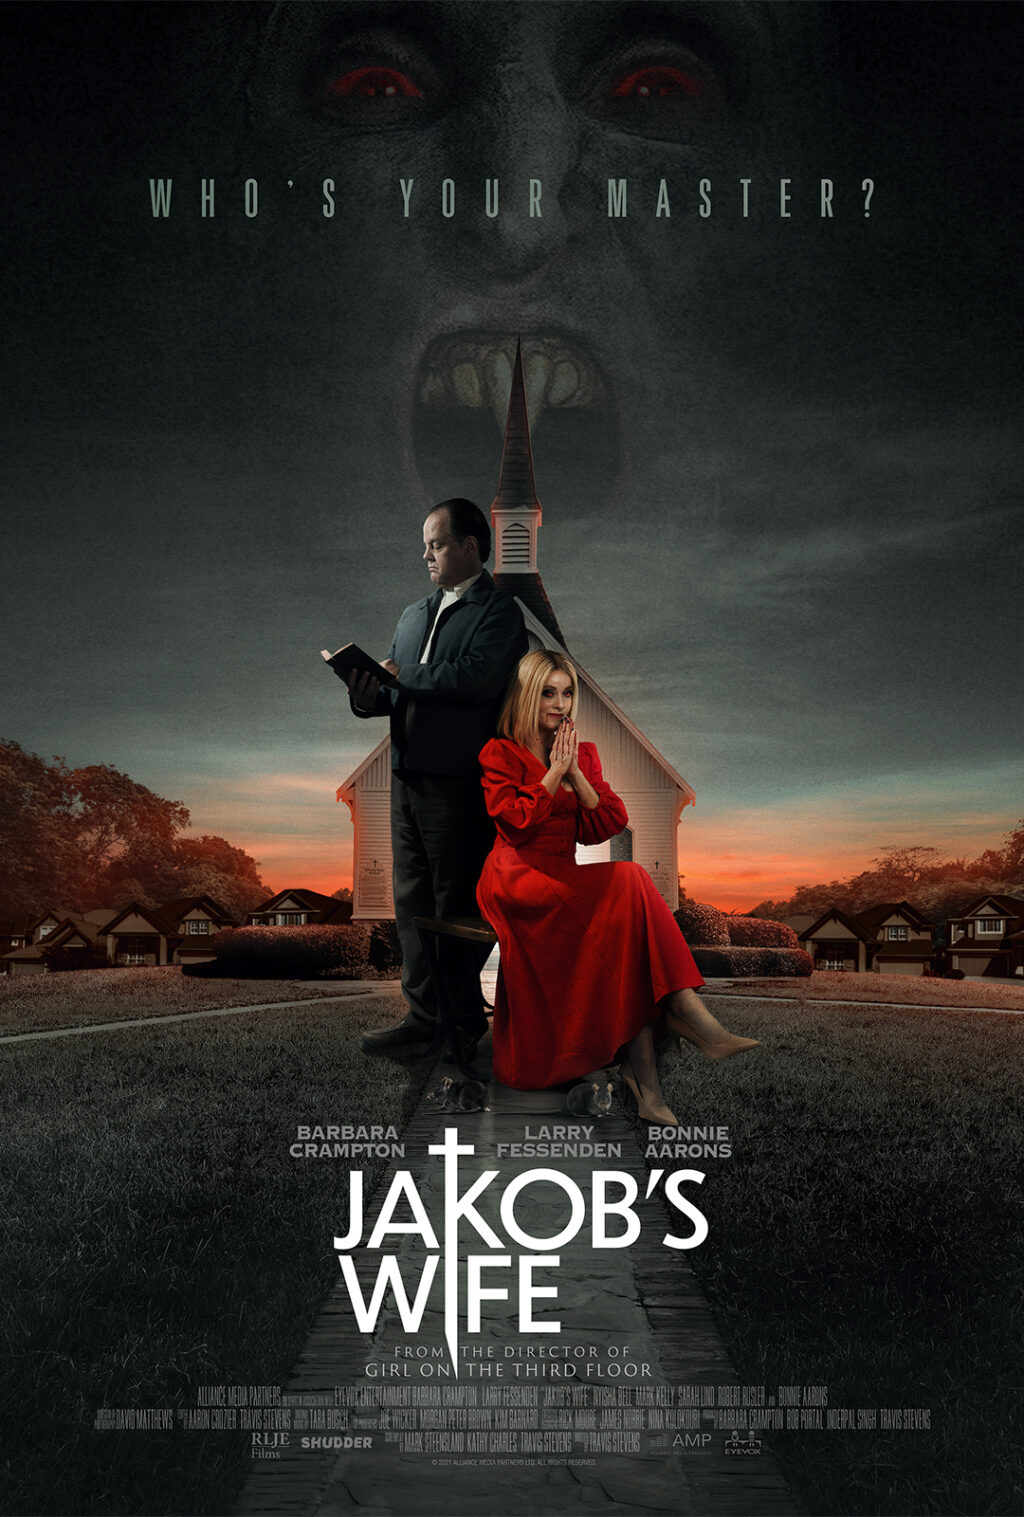 JakobsWife 1080x1600 3 1024x1517 - SXSW Review: JAKOB'S WIFE - Marriage Counseling Has Never Been This Bloody